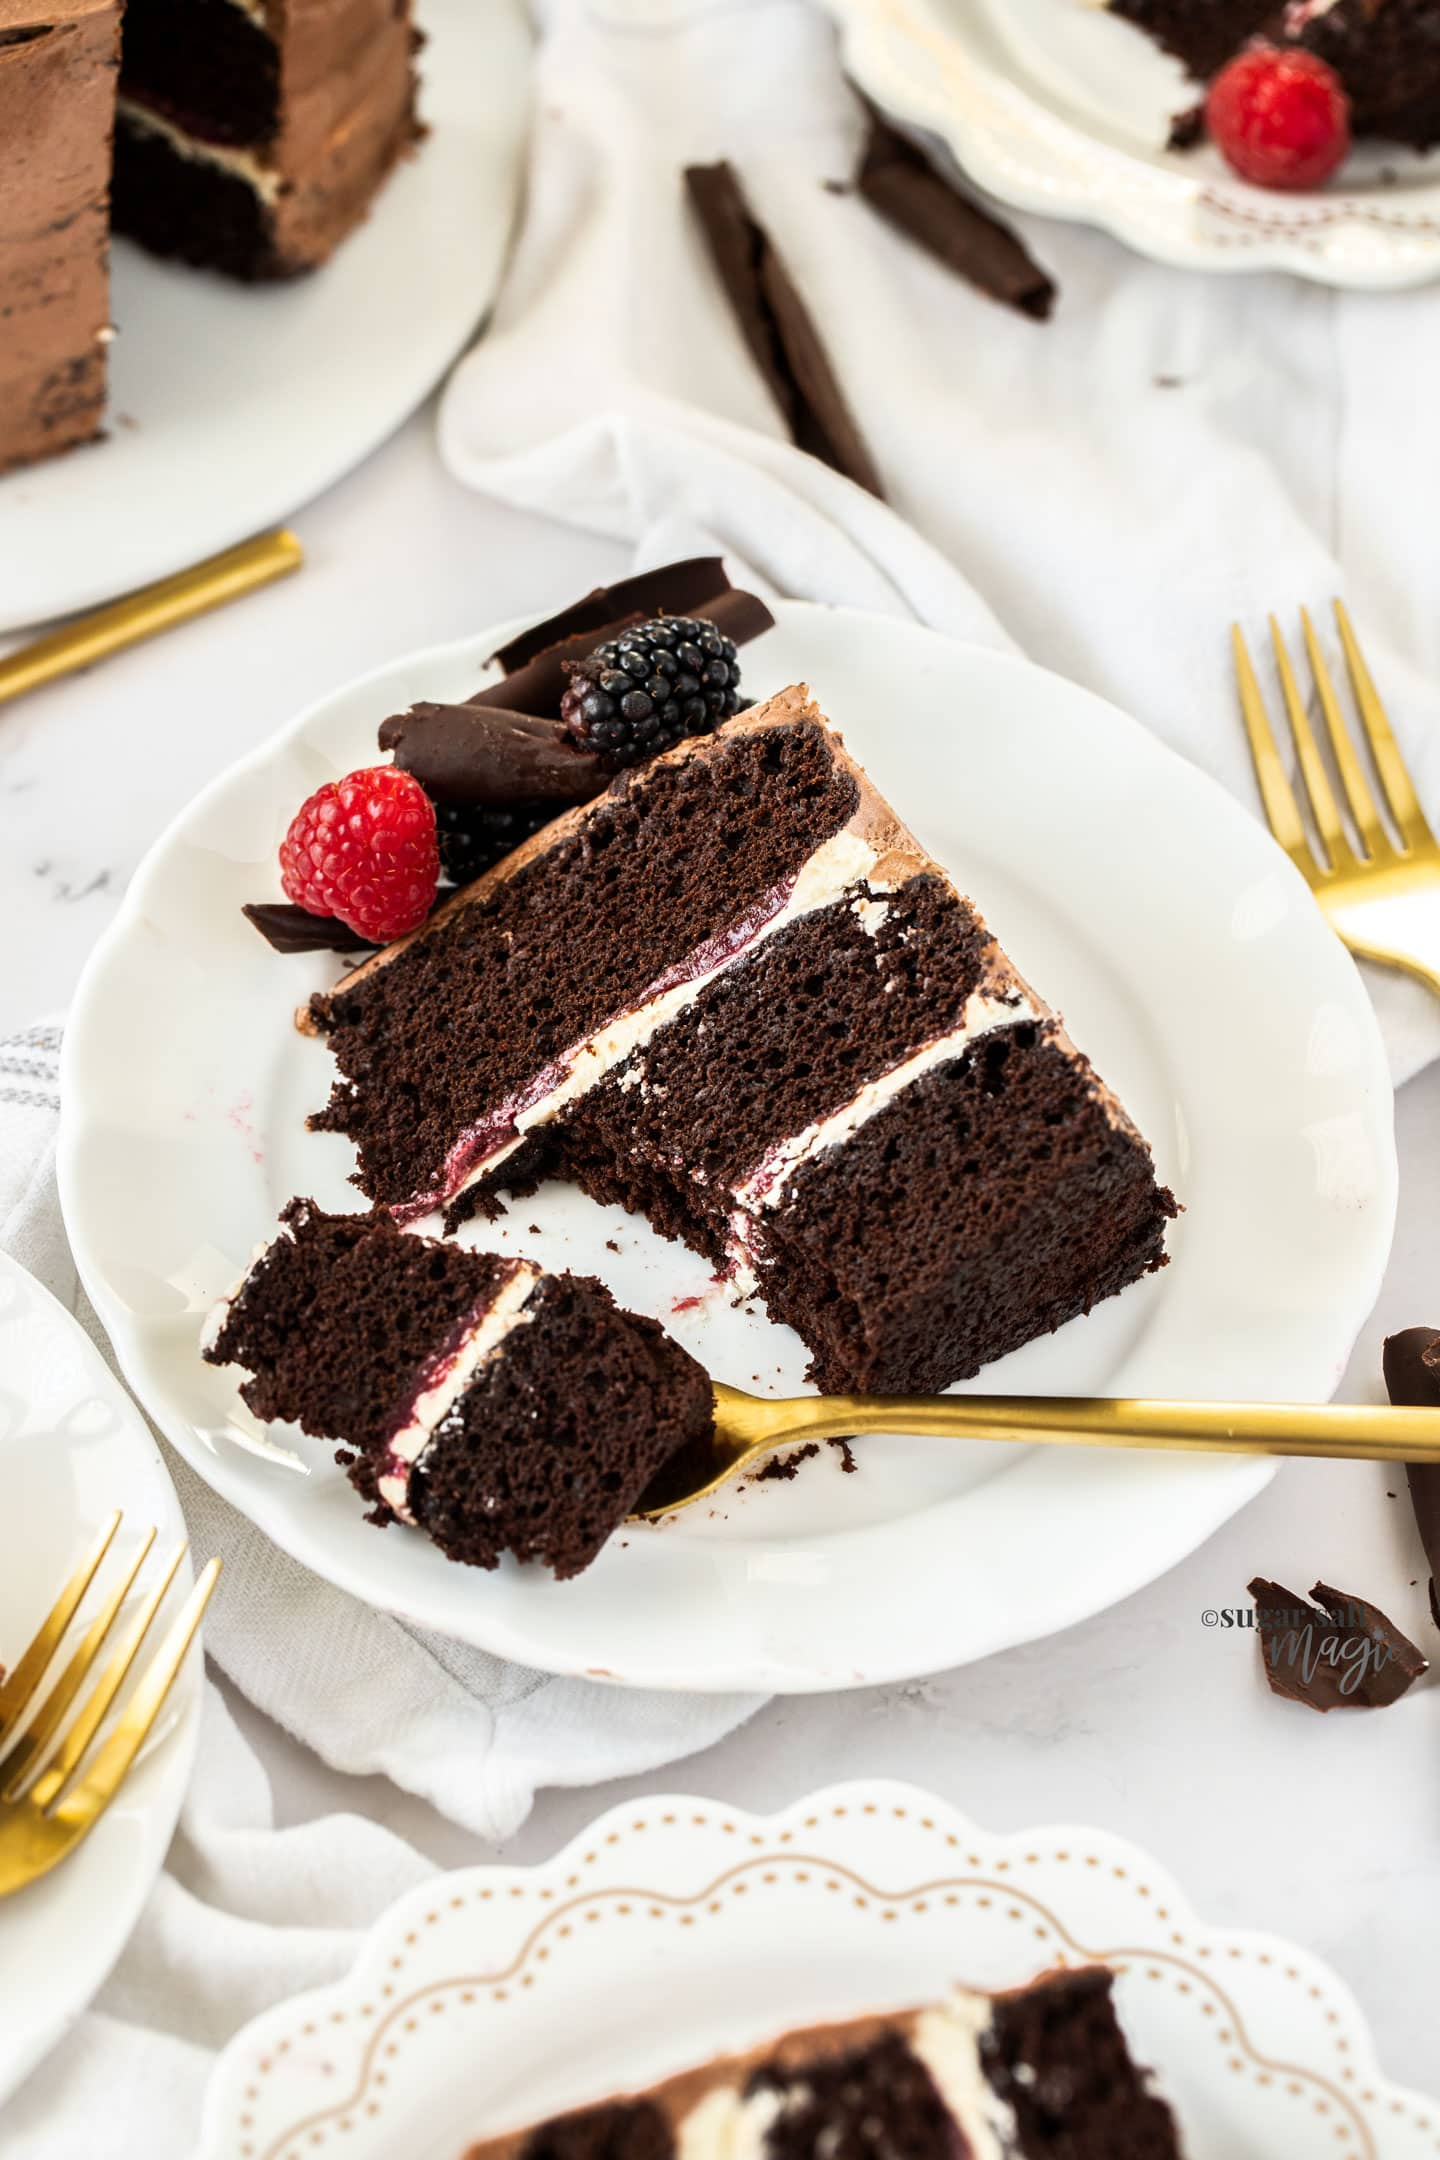 A slice of 3 layer chocolate cake on a white plate with a forkful cut out